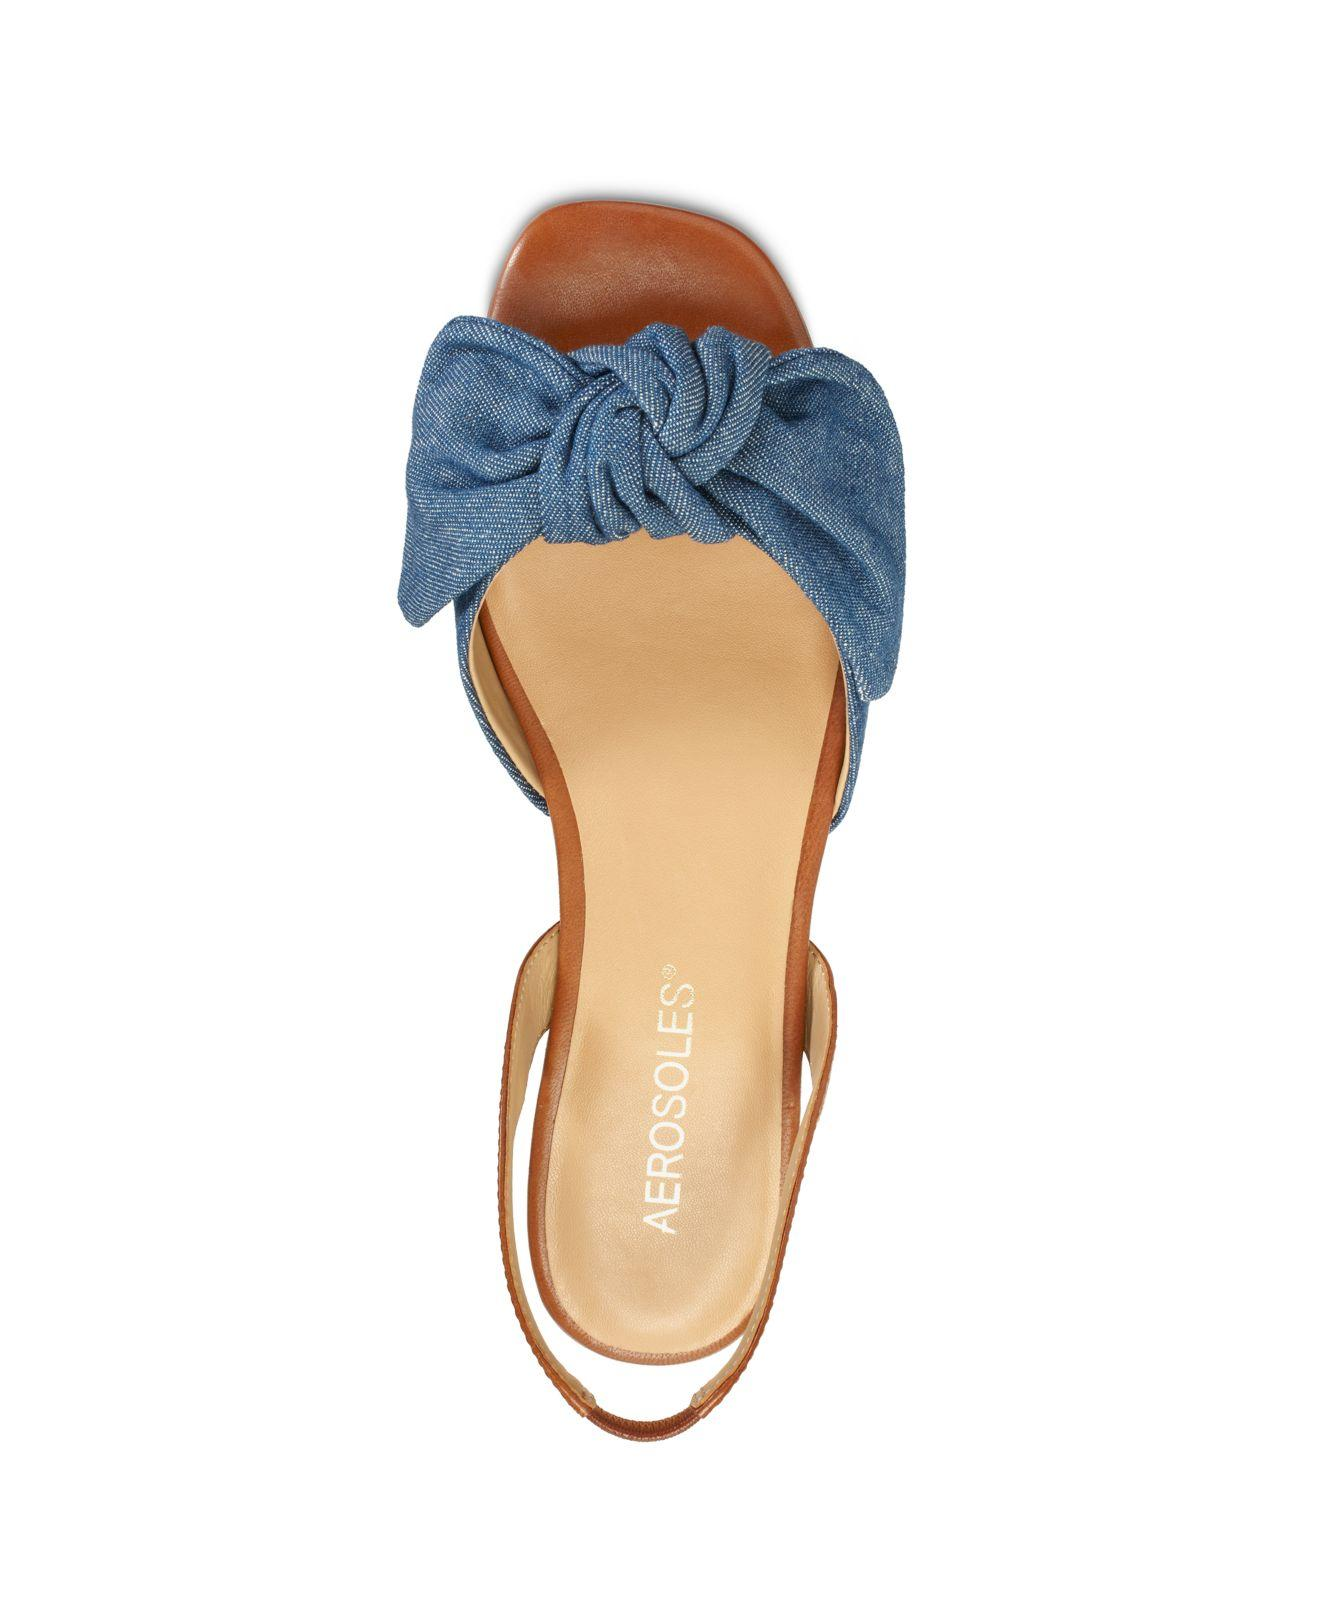 Aerosoles Leather Down Time Sandals in